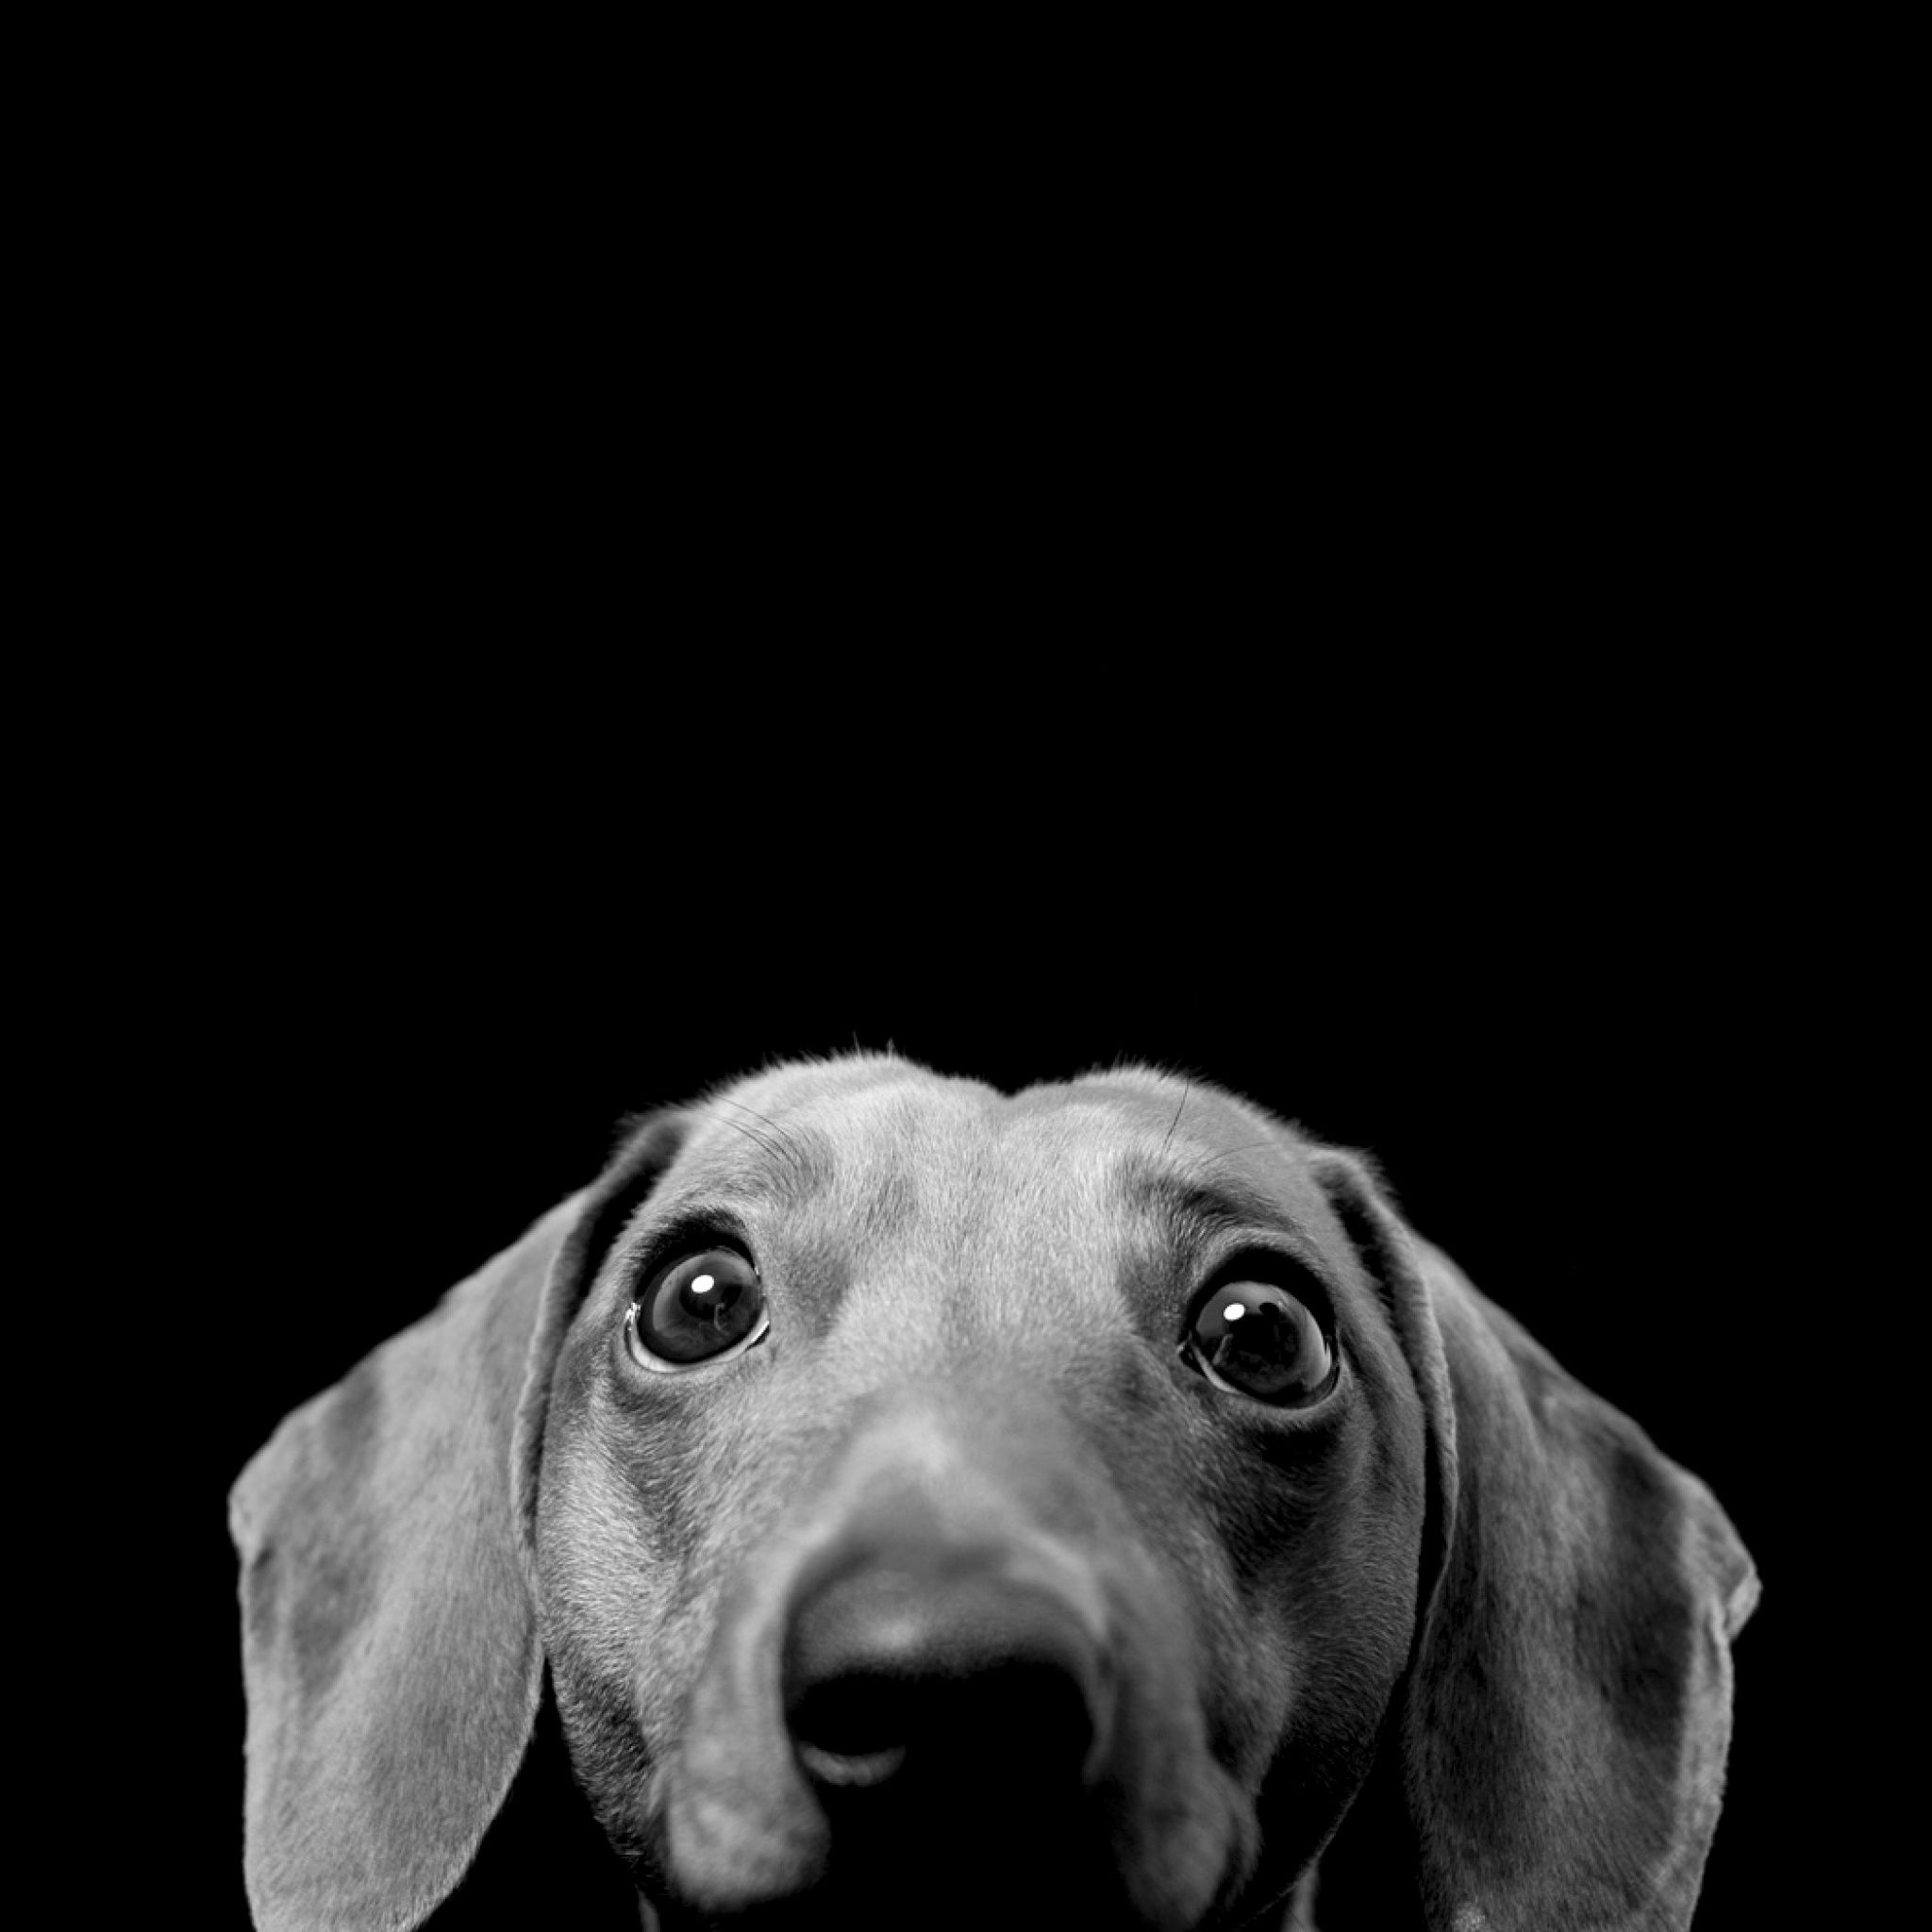 Dog wallpapers for ipad Dachshund Wallpaper! Pinterest